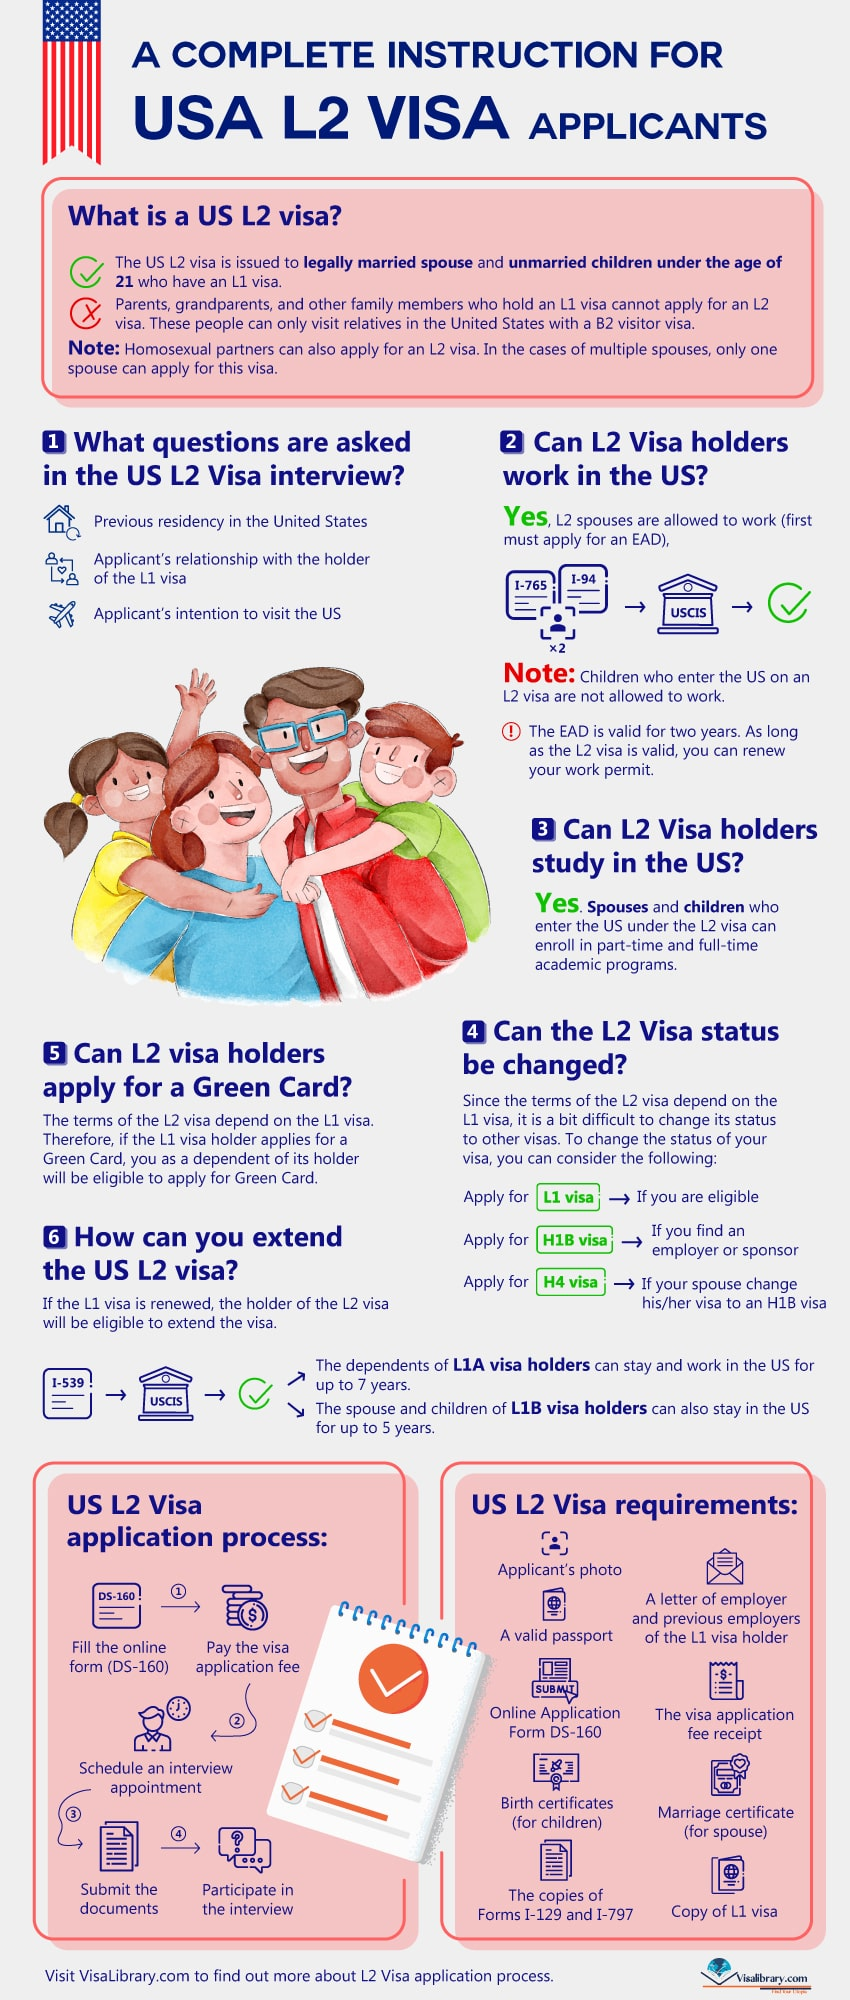 Infographic What Questions are Asked in the US L2 Visa Interview?